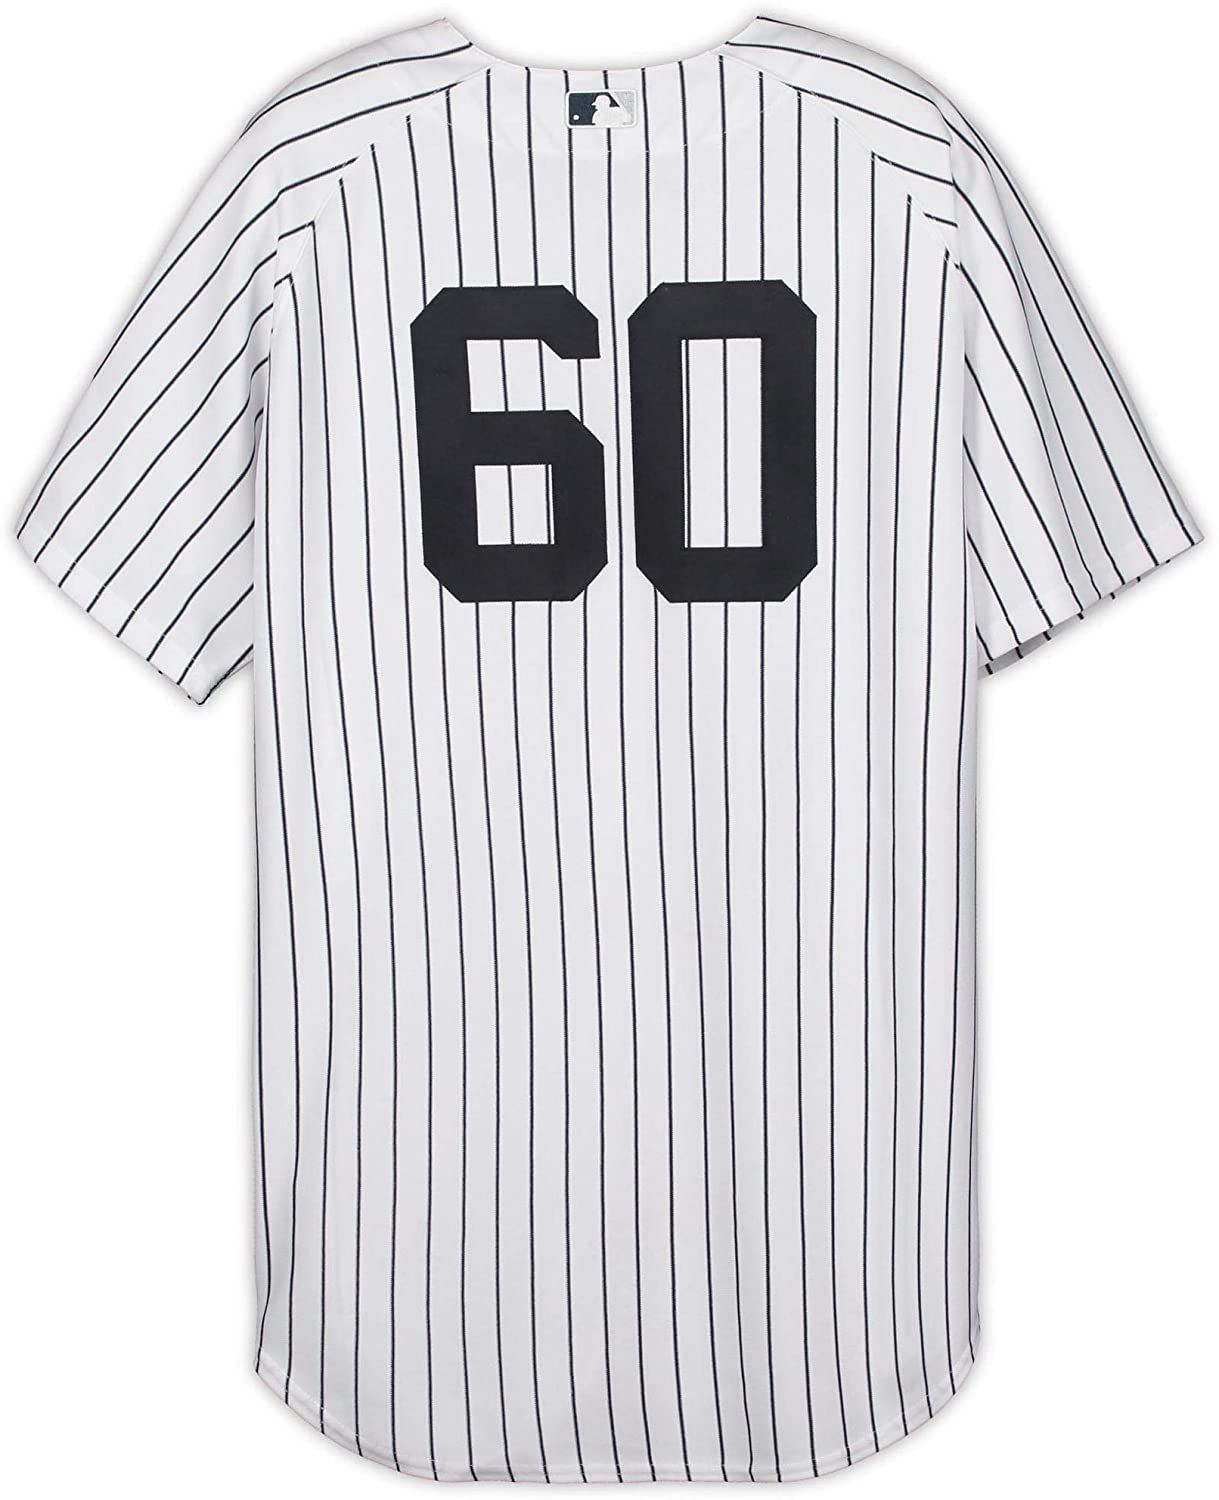 Gary Tuck New York Yankees Player-Issued #60 White Jersey from the 2014 MLB Season - Size 50 - Fanatics Authentic Certified